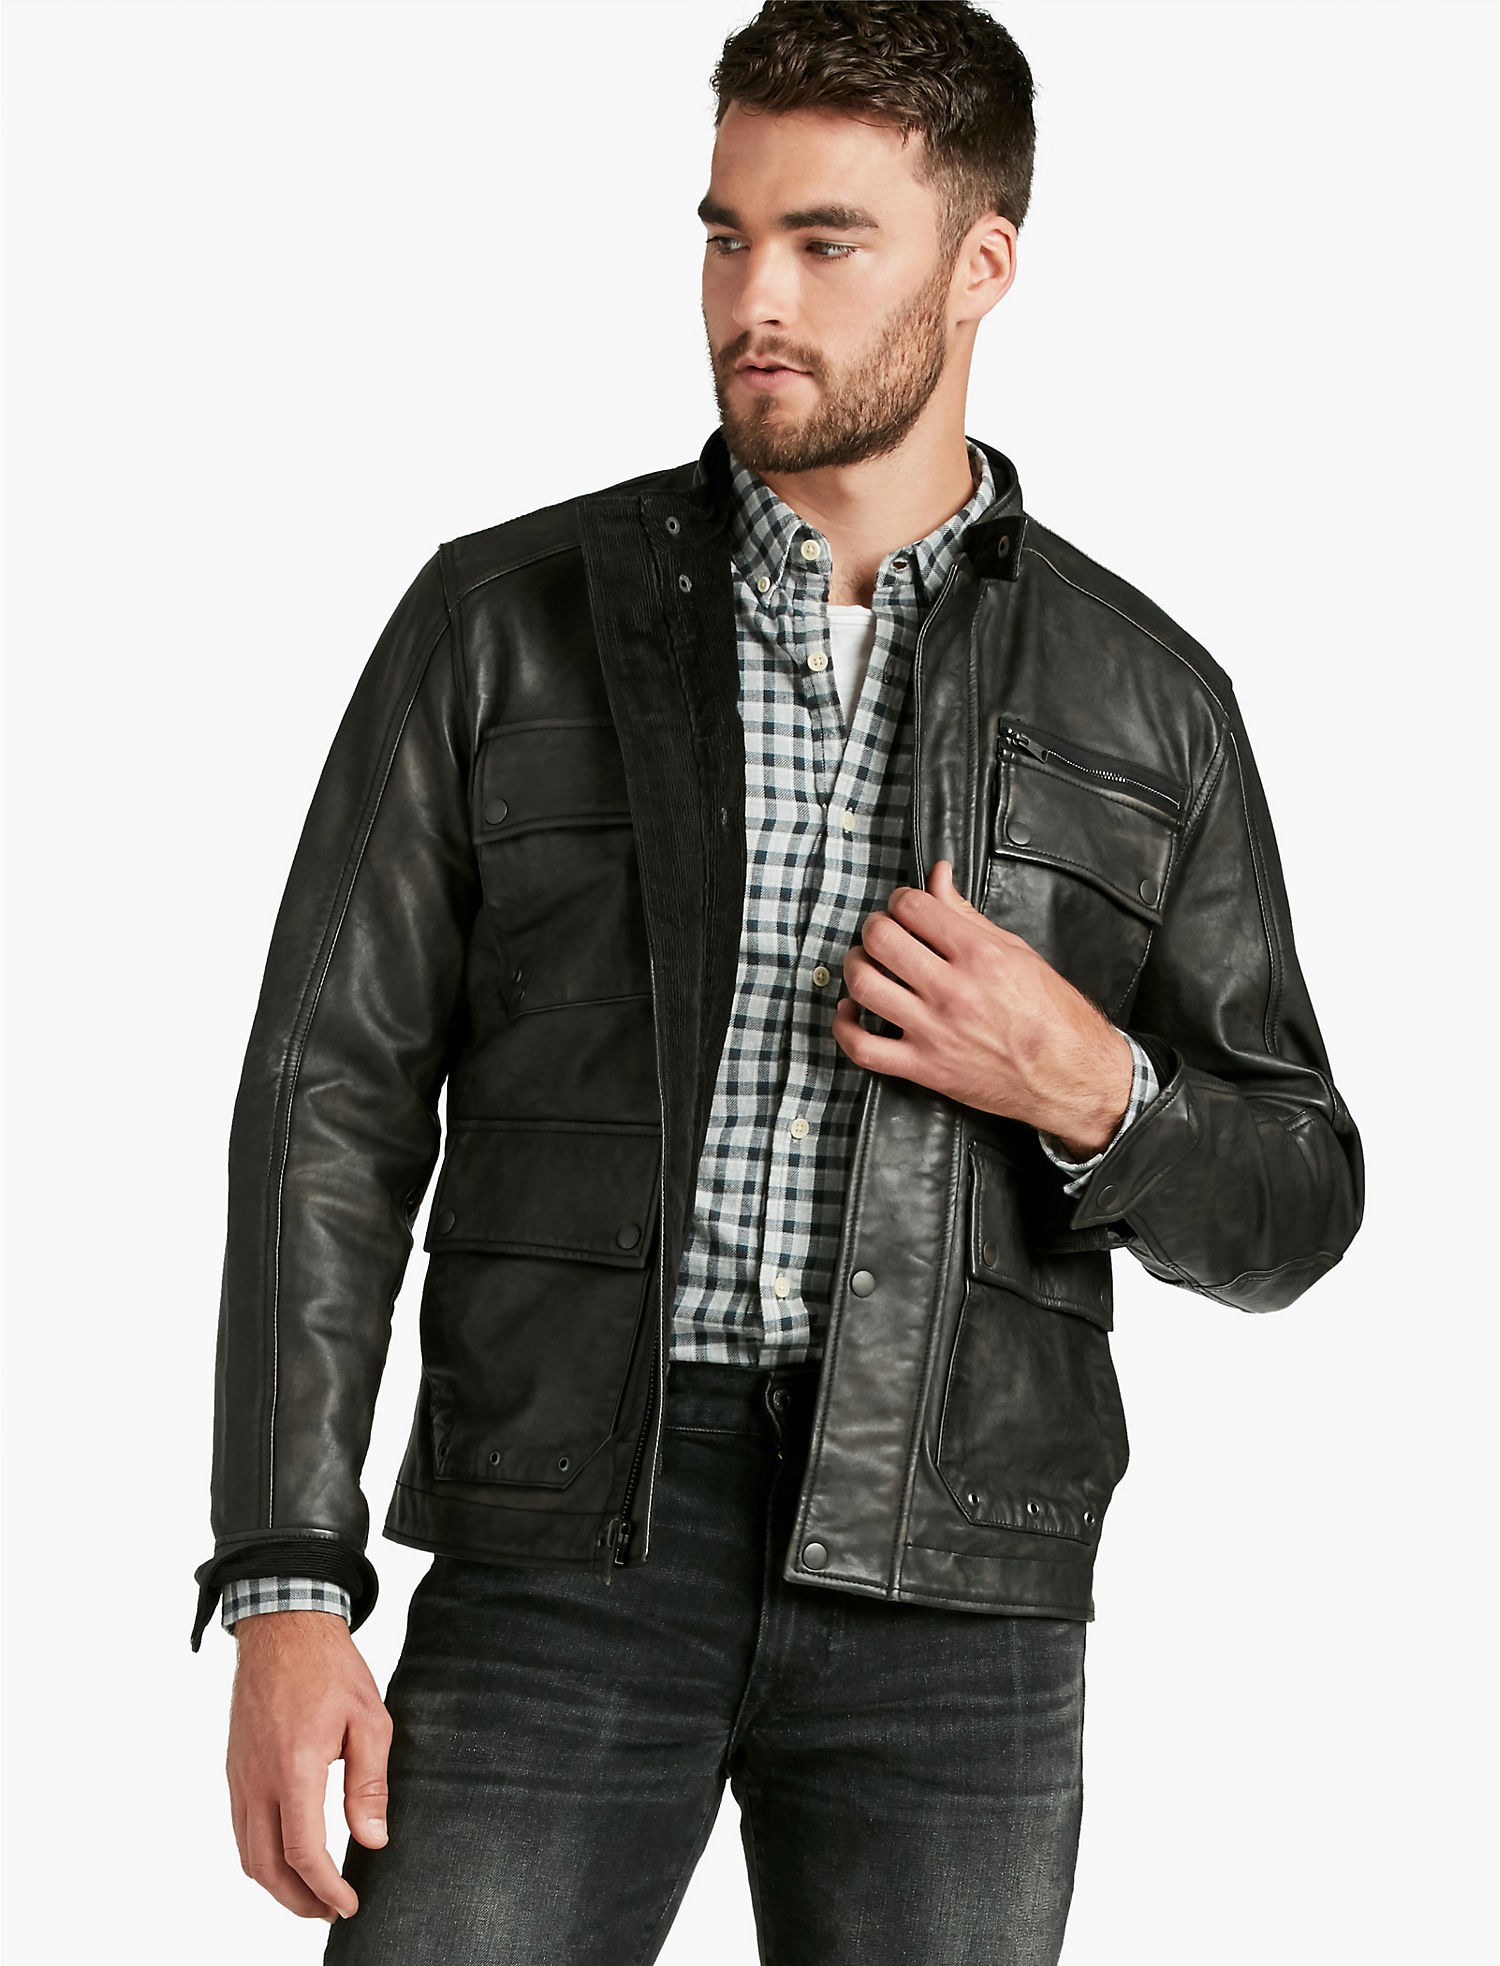 free people leather pin fitted rugged jackets from jacket and rug